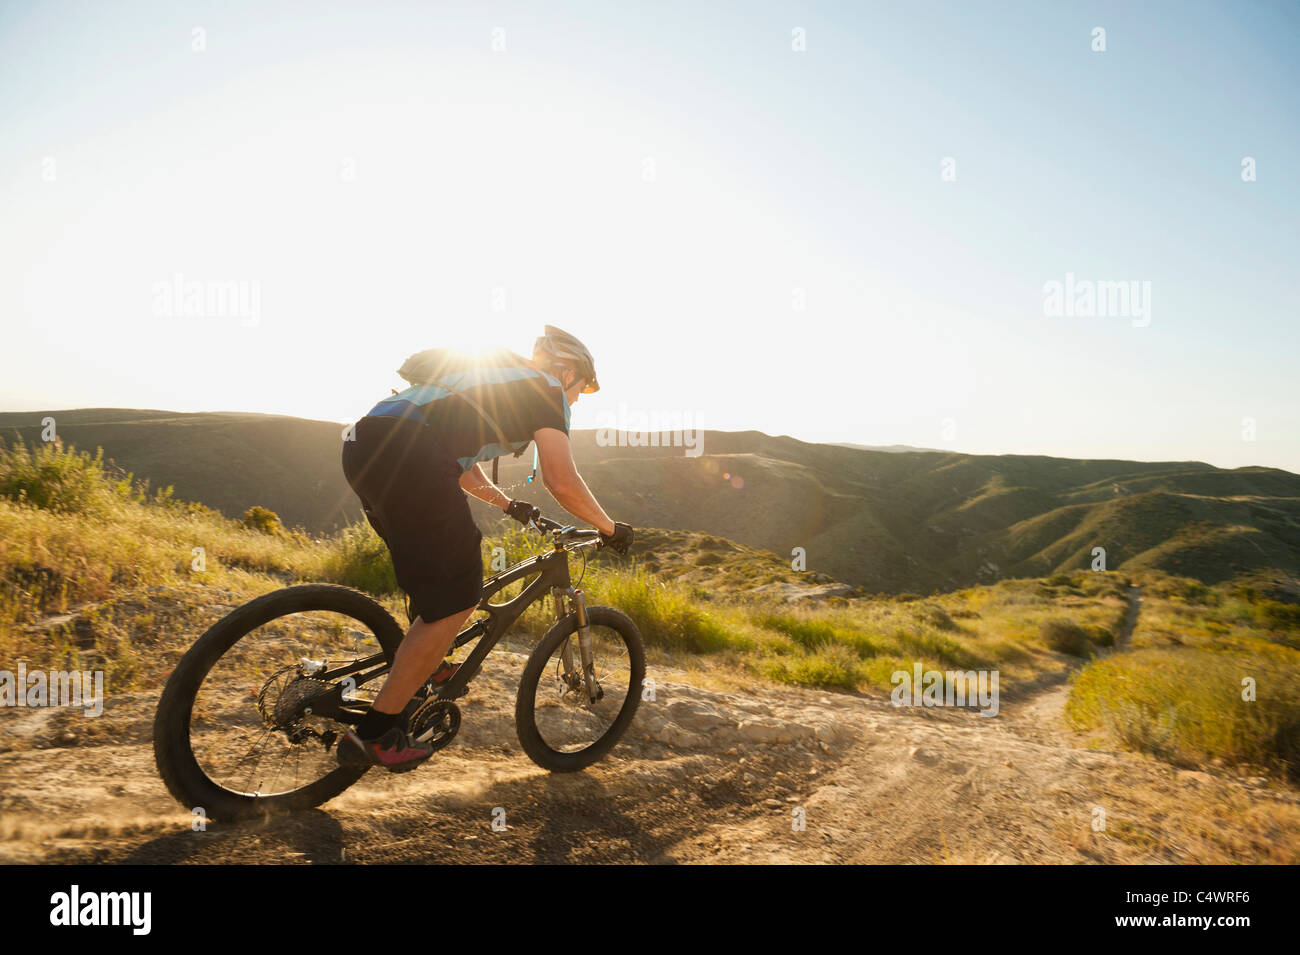 Stati Uniti d'America,California,Laguna Beach,mountain biker guida in discesa Immagini Stock